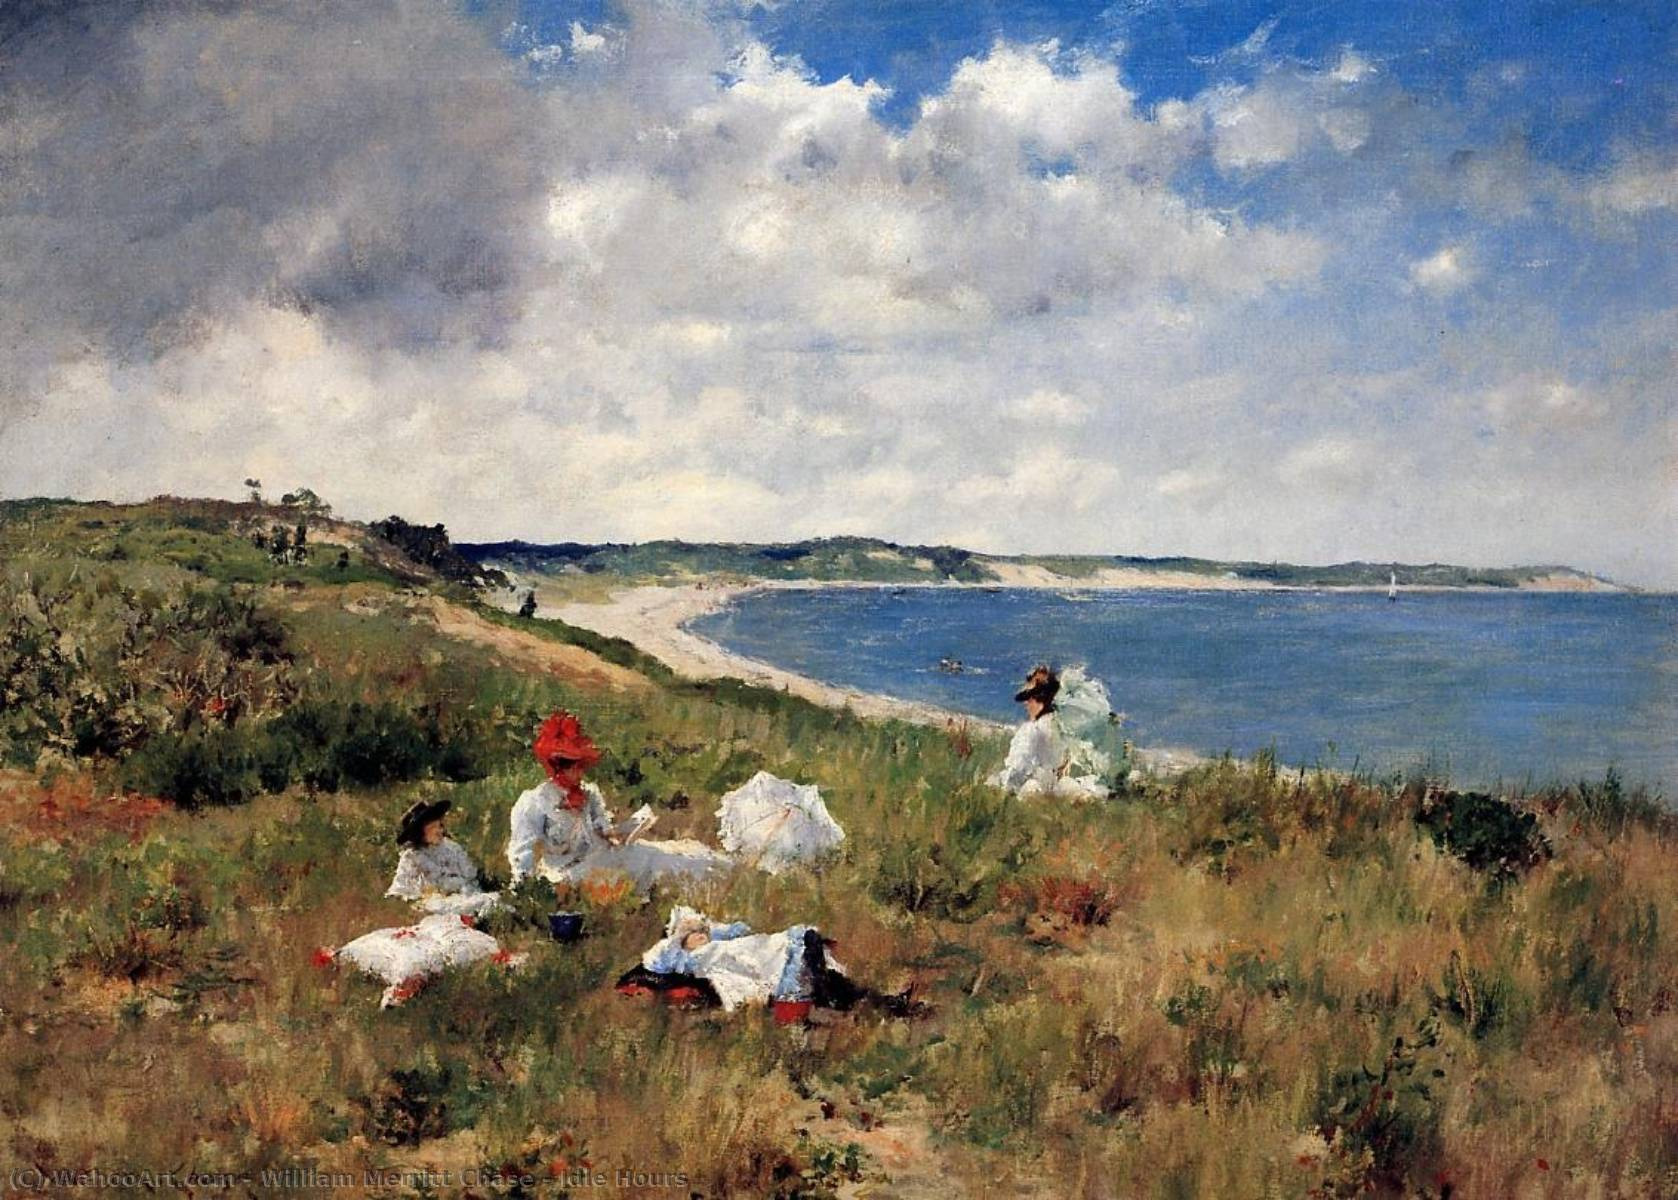 Compra Riproduzioni D'arte Del Museo | ore di inattività di William Merritt Chase | Most-Famous-Paintings.com